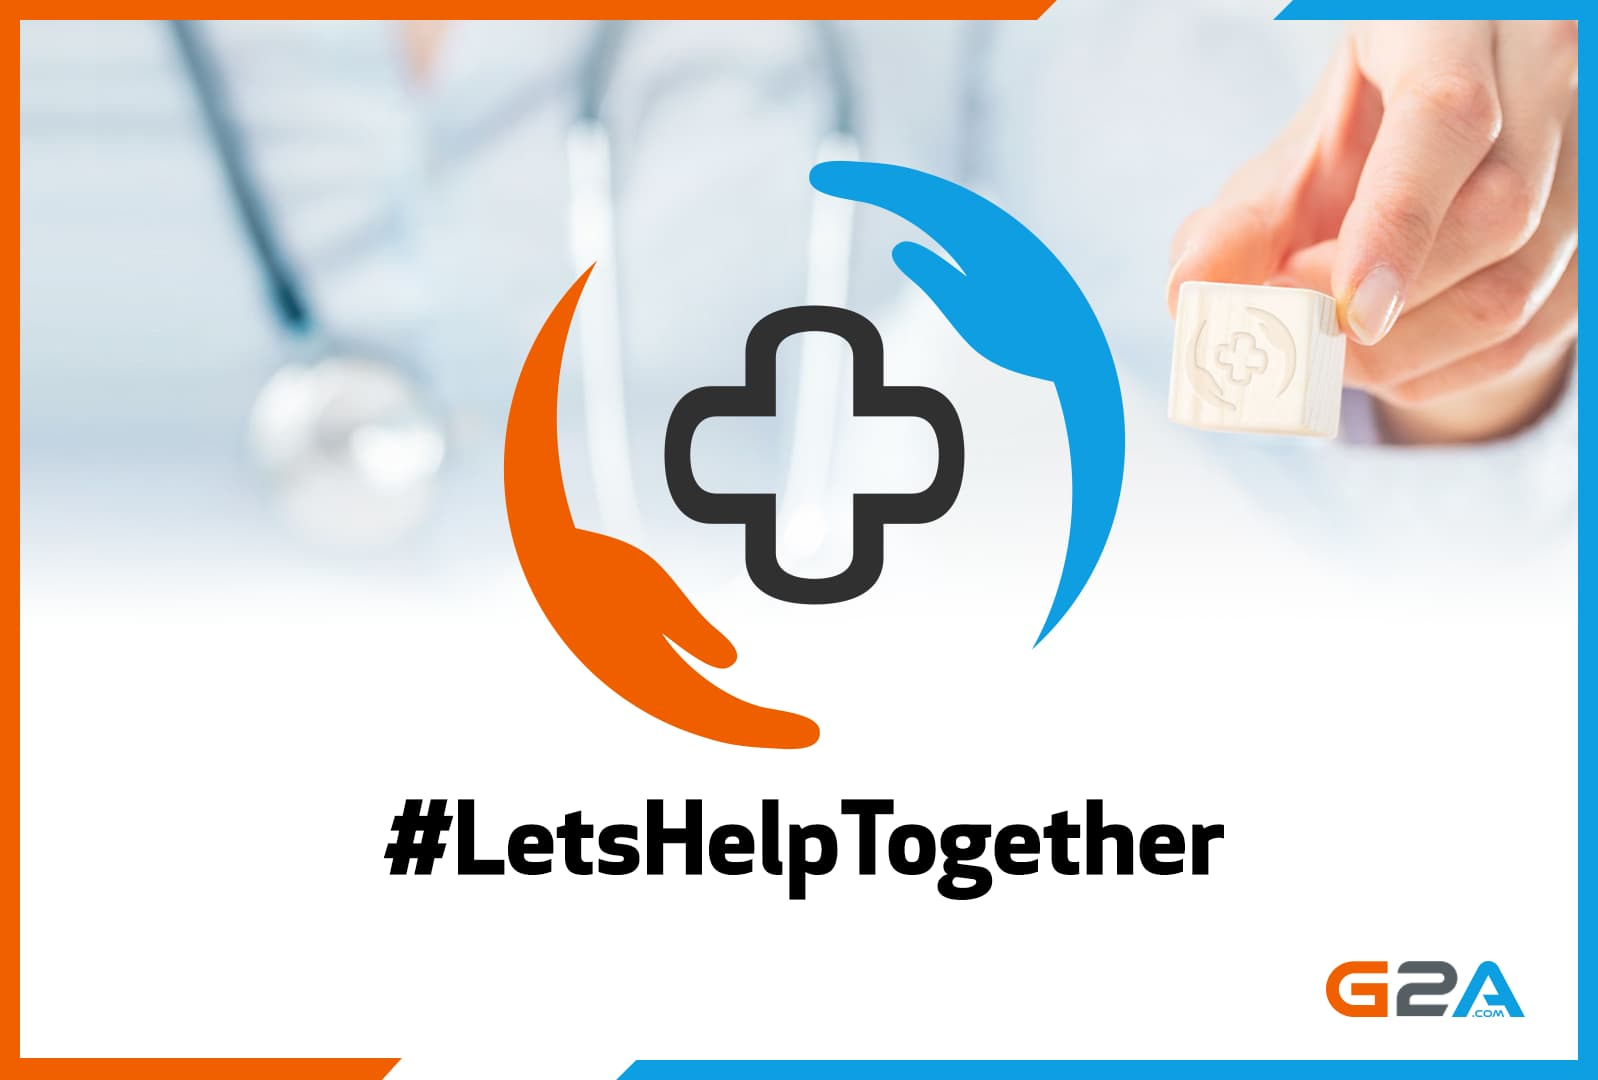 G2A offers to build free online platforms for charities all over the world. #LetsHelpTogether globally!